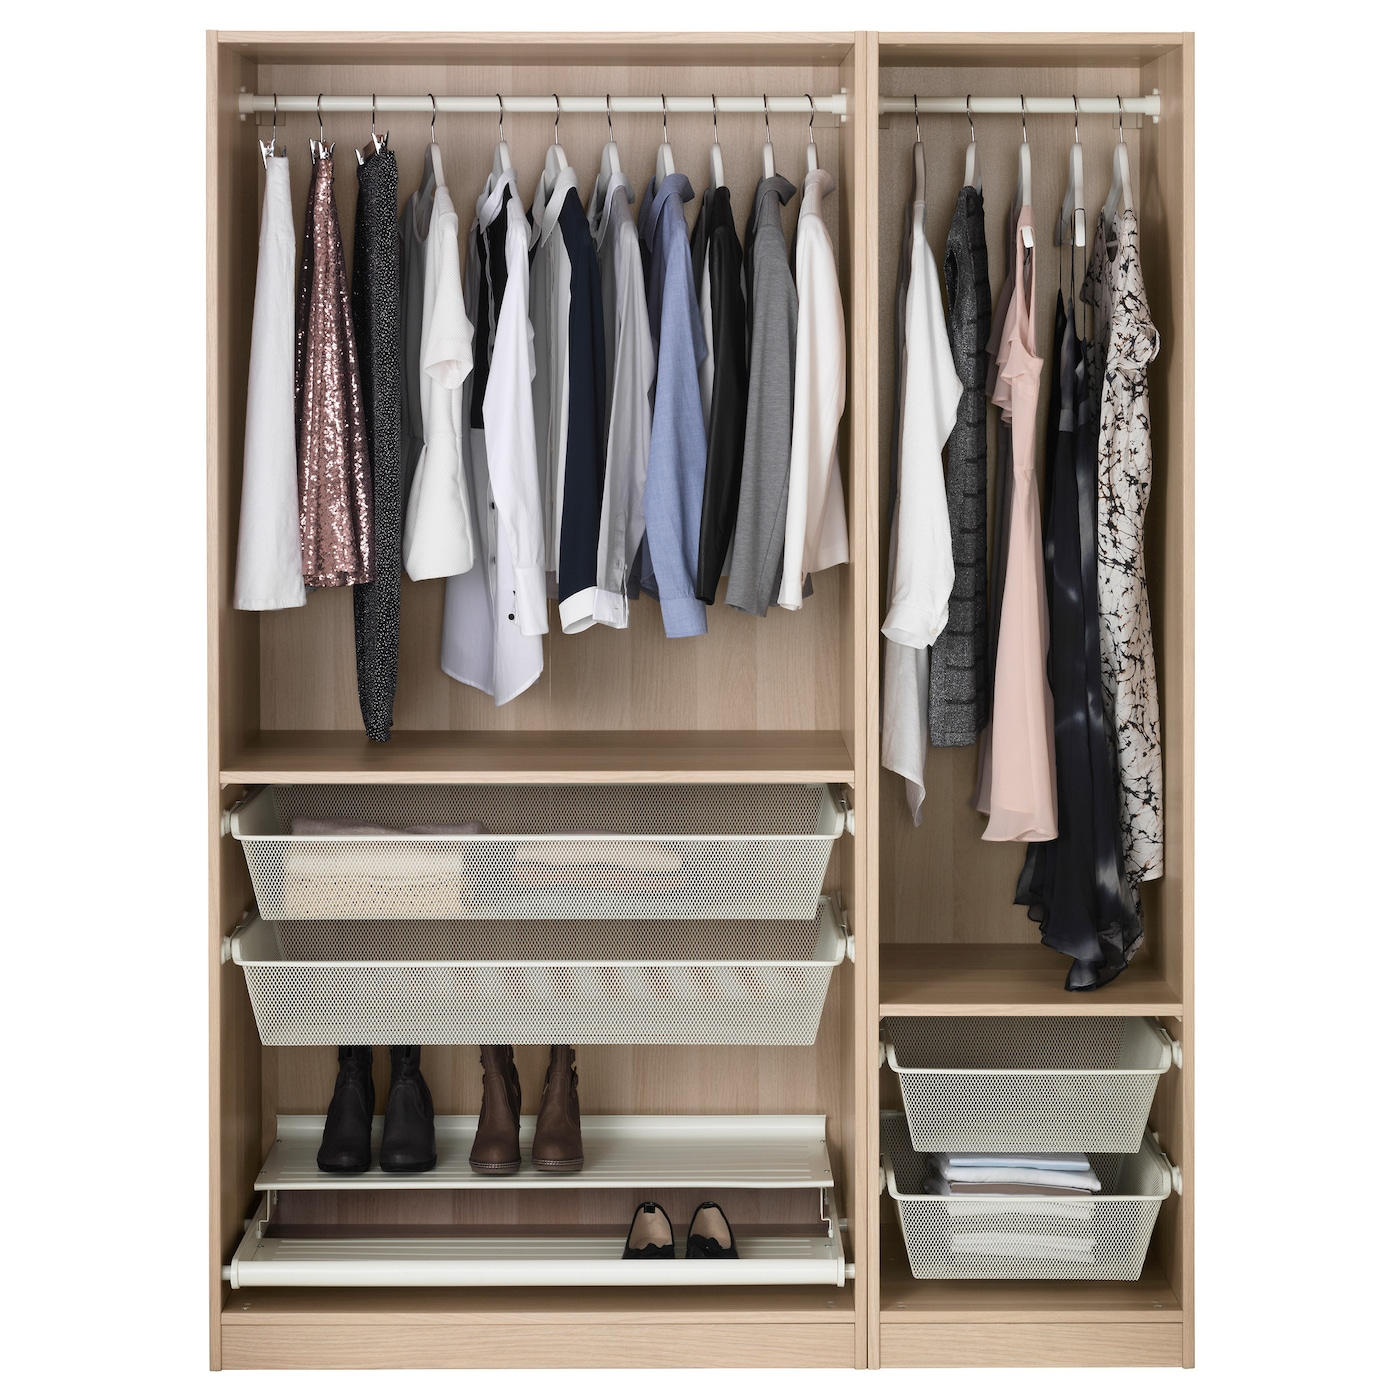 pax wardrobe white stained oak effect 150x58x201 cm ikea. Black Bedroom Furniture Sets. Home Design Ideas